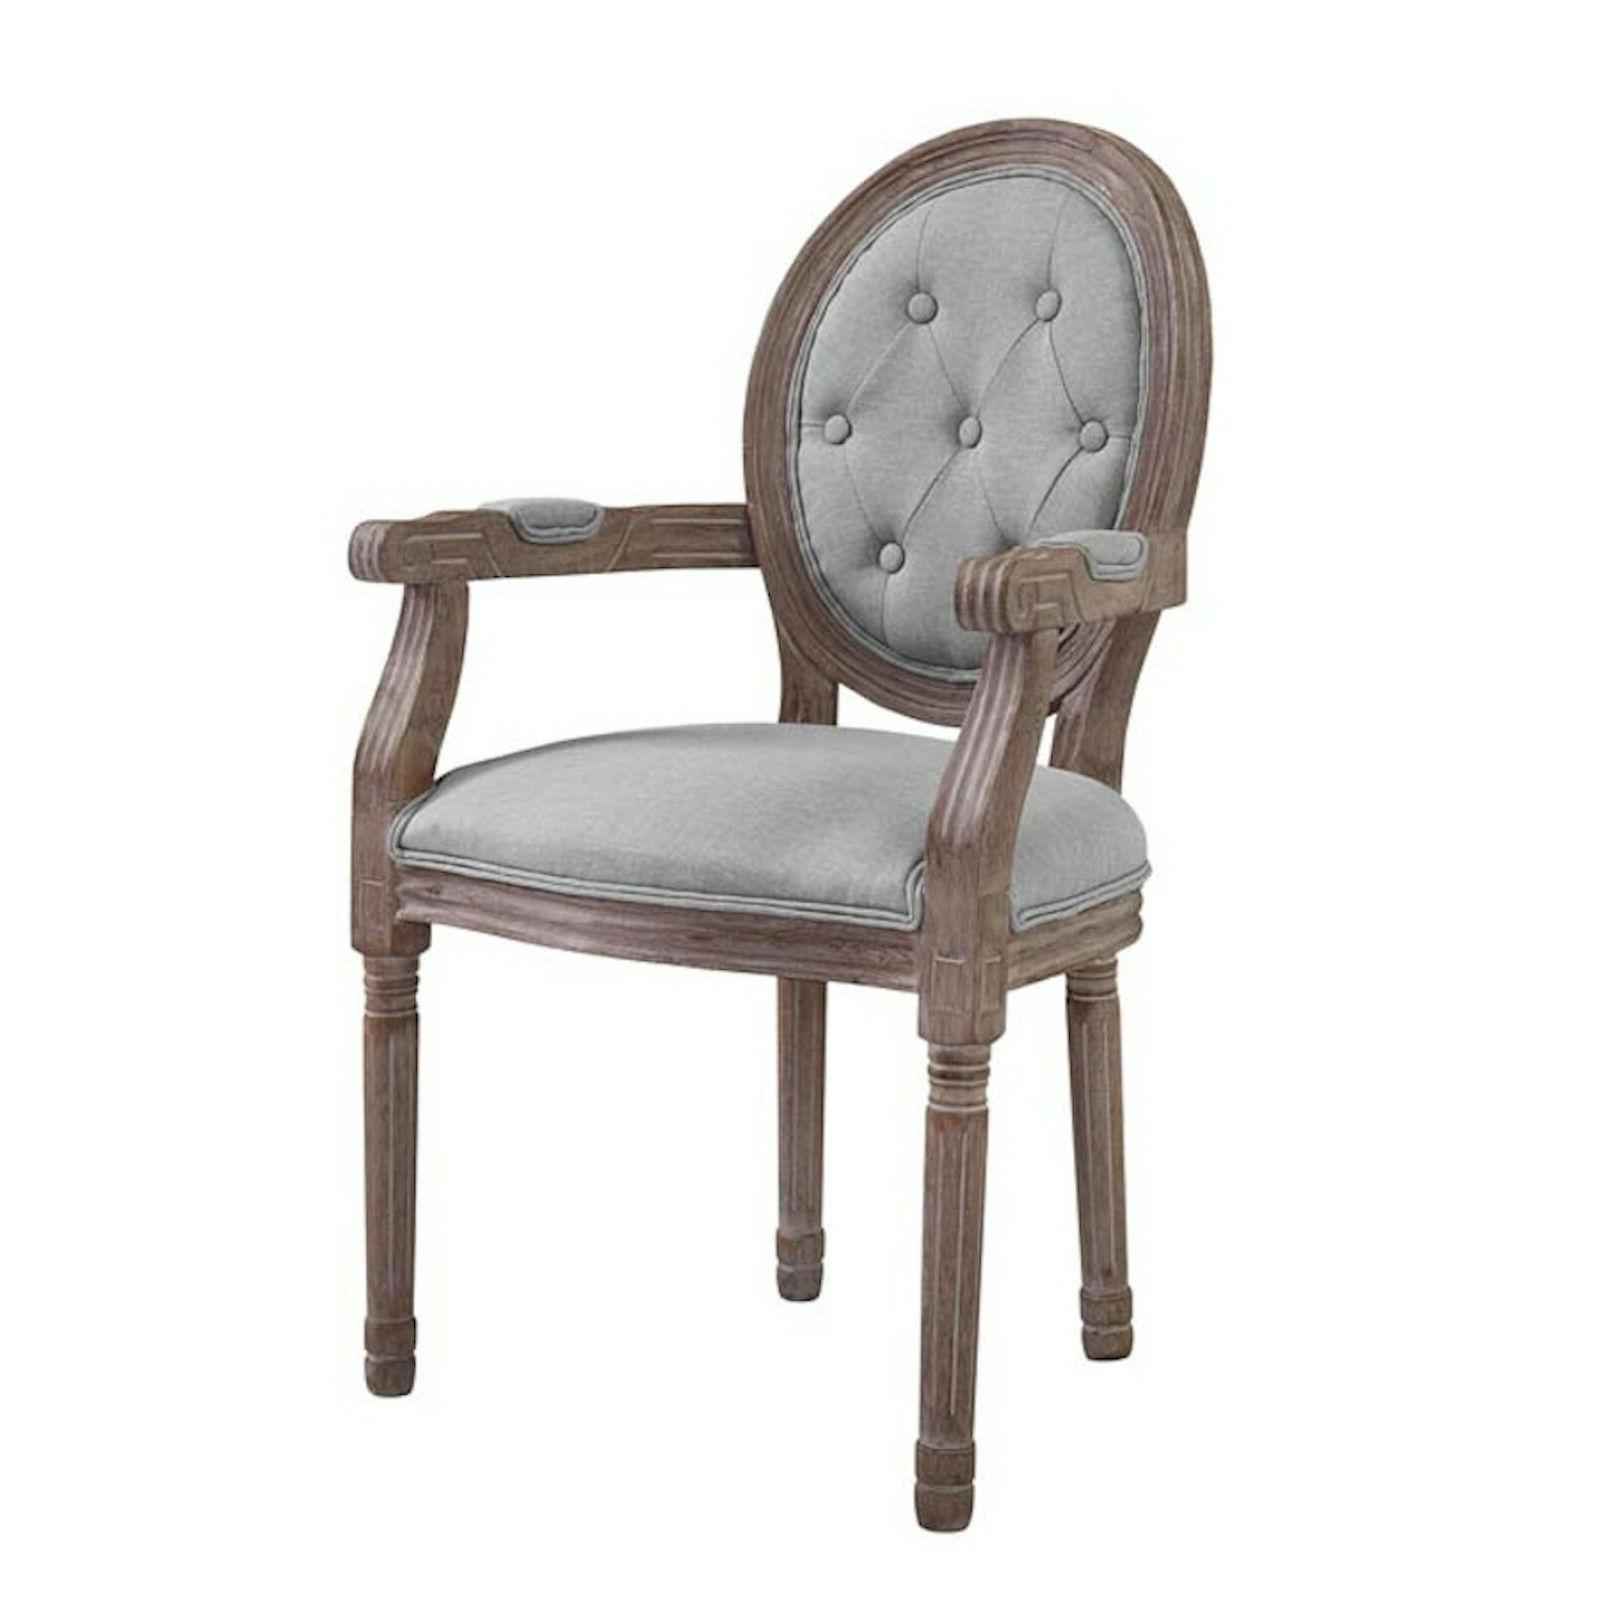 French Dining Chair Louis XVI Style Gray Beige